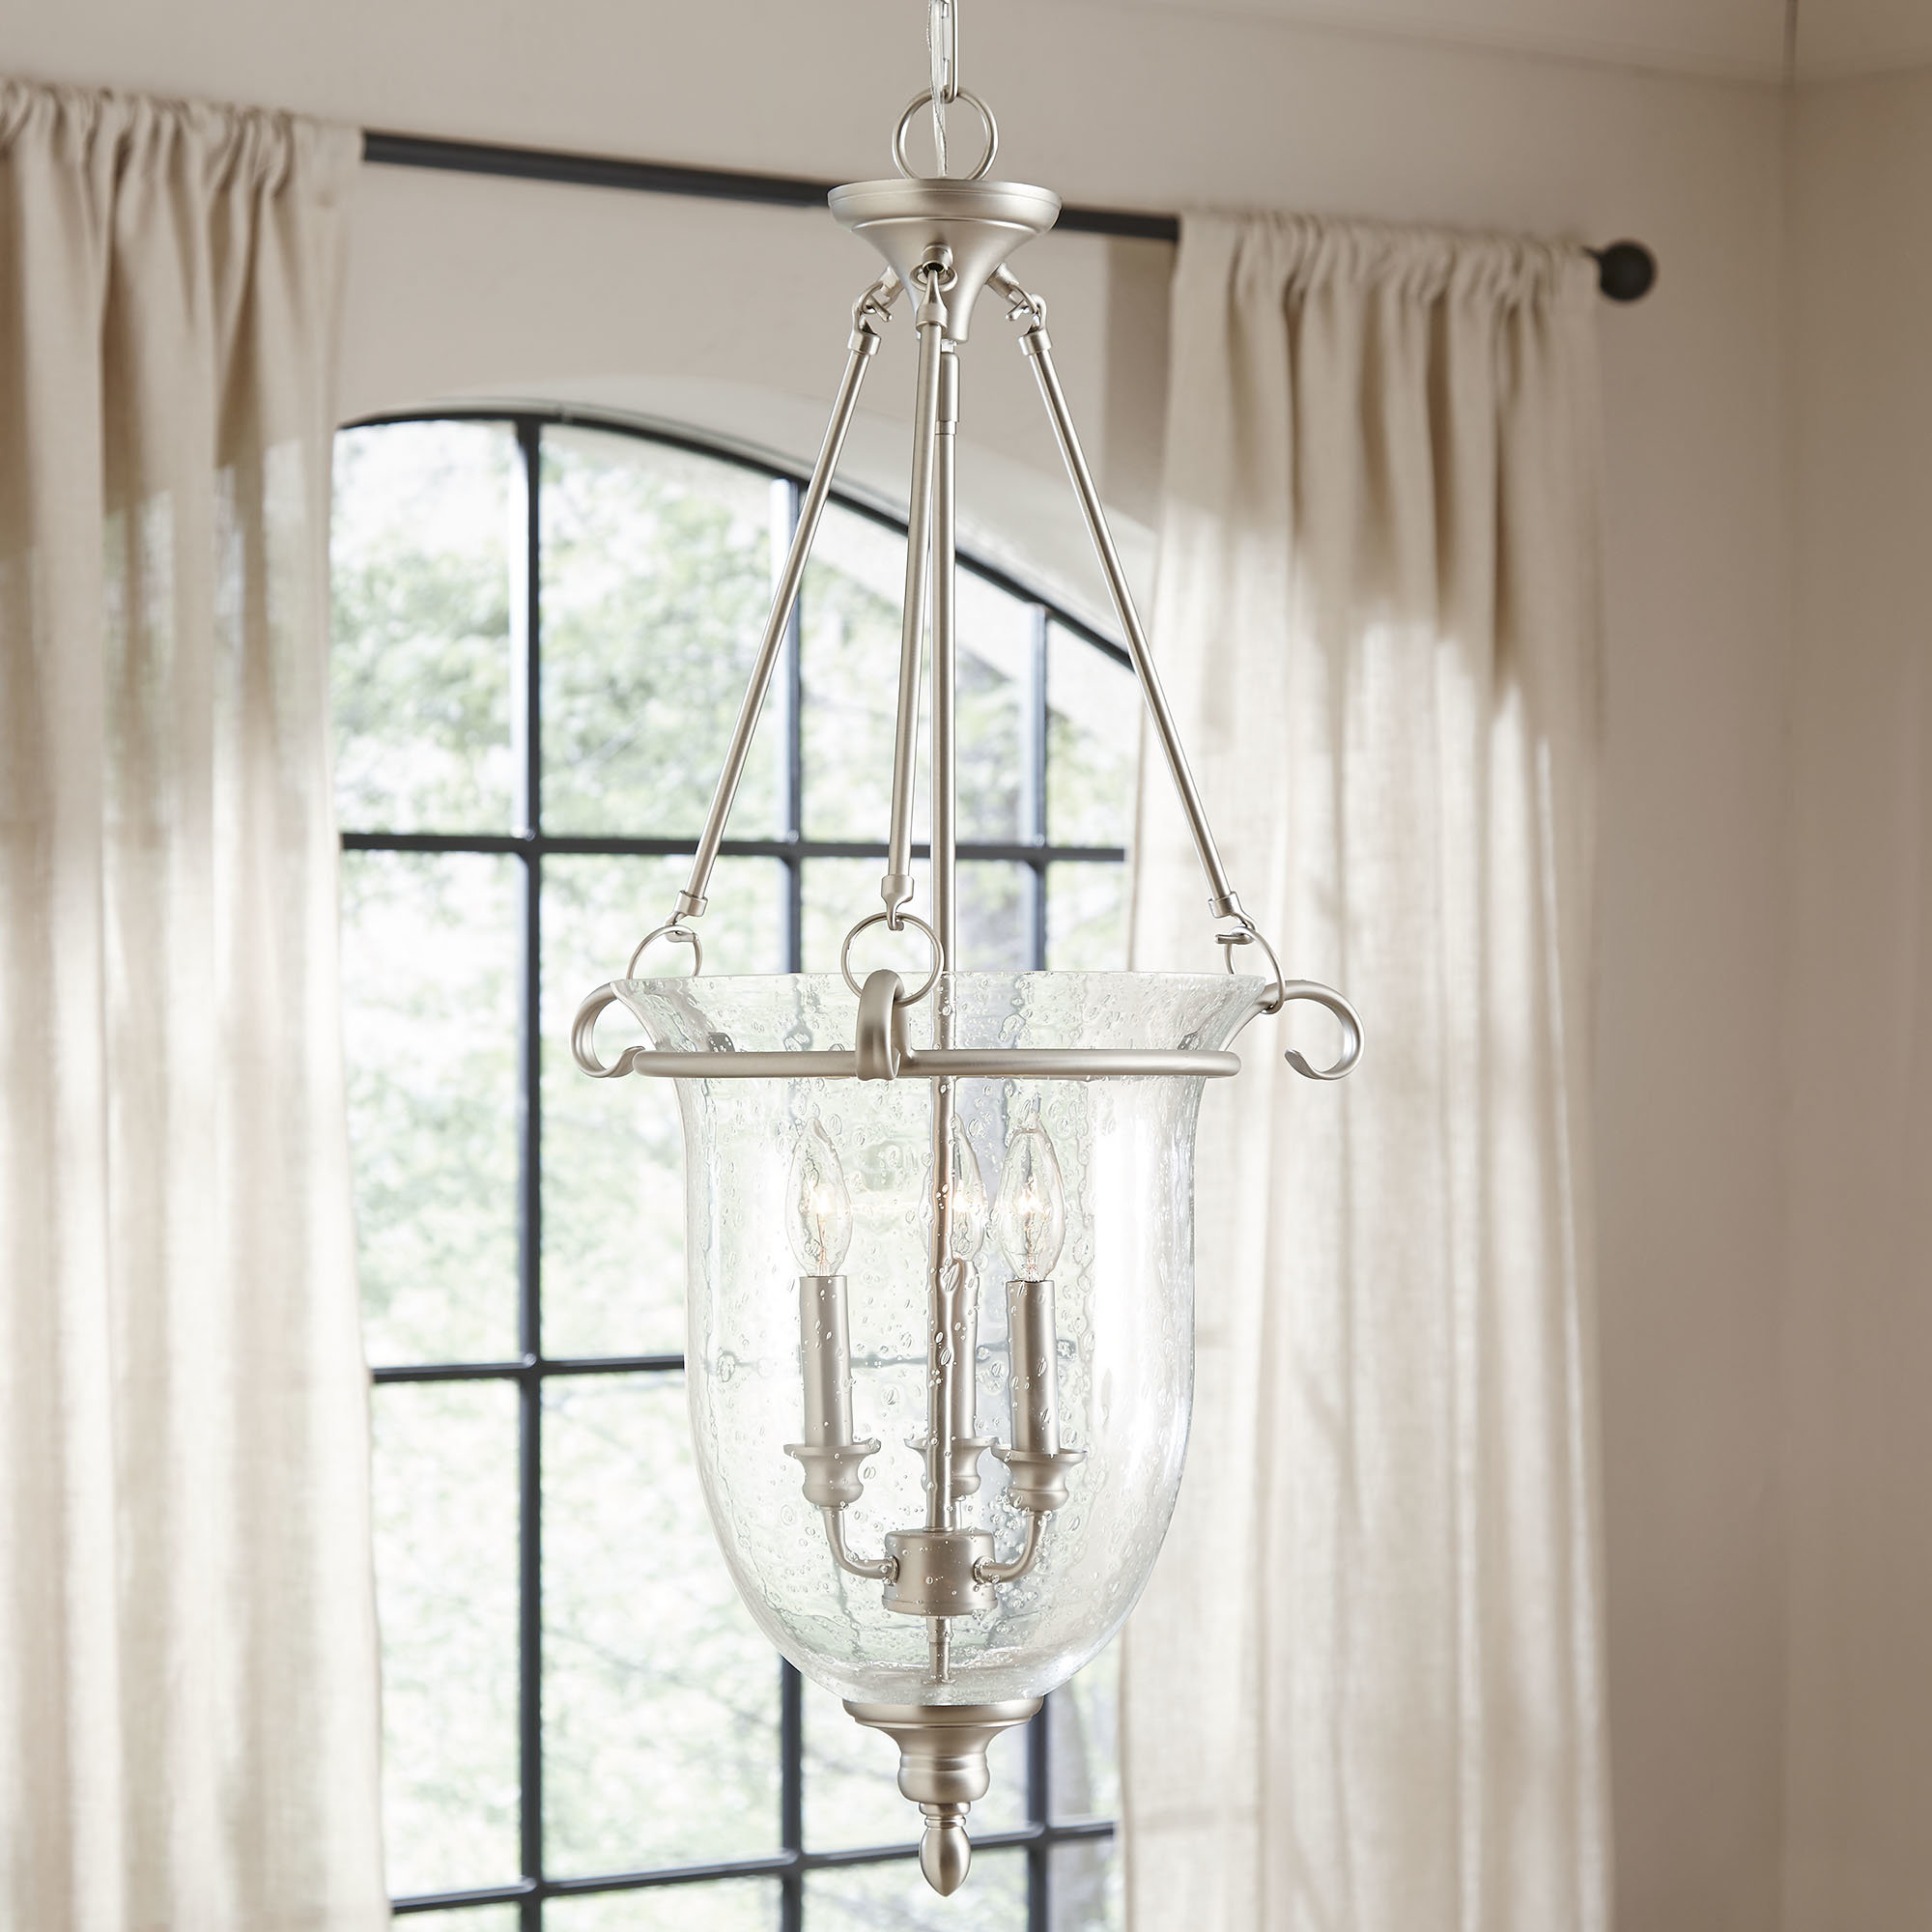 3 Light Single Urn Pendant Intended For Fashionable Rockland 4 Light Geometric Pendants (View 11 of 25)